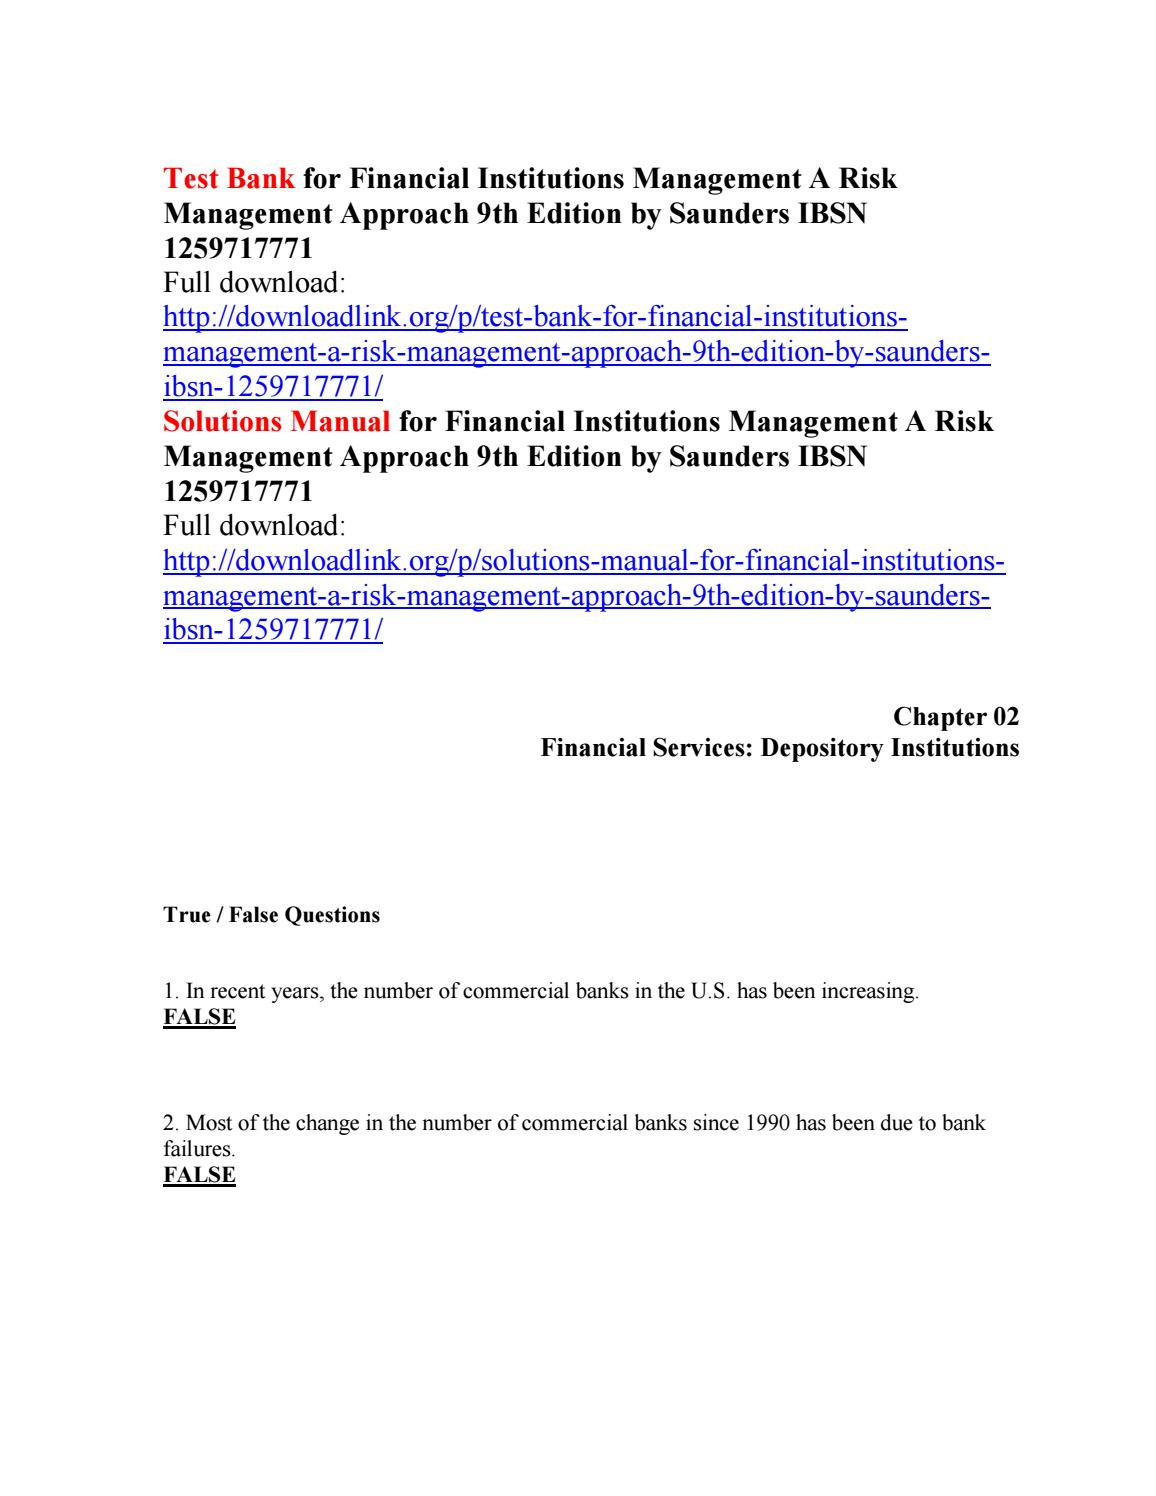 Test bank for financial institutions management a risk management approach  9th edition by saunders i by Trites111 - issuu